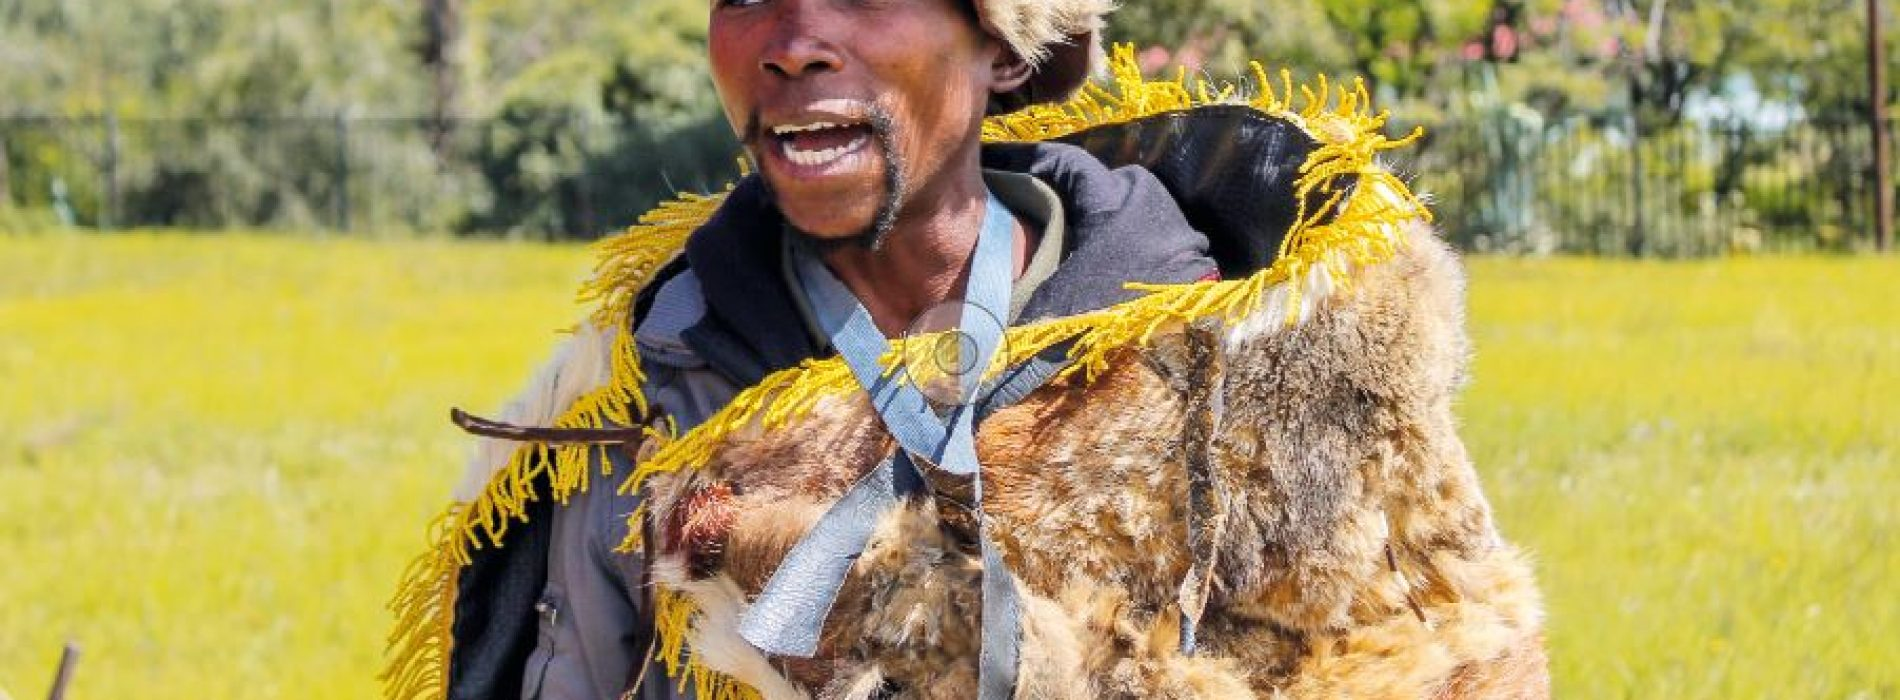 Eking a living out of animal hides